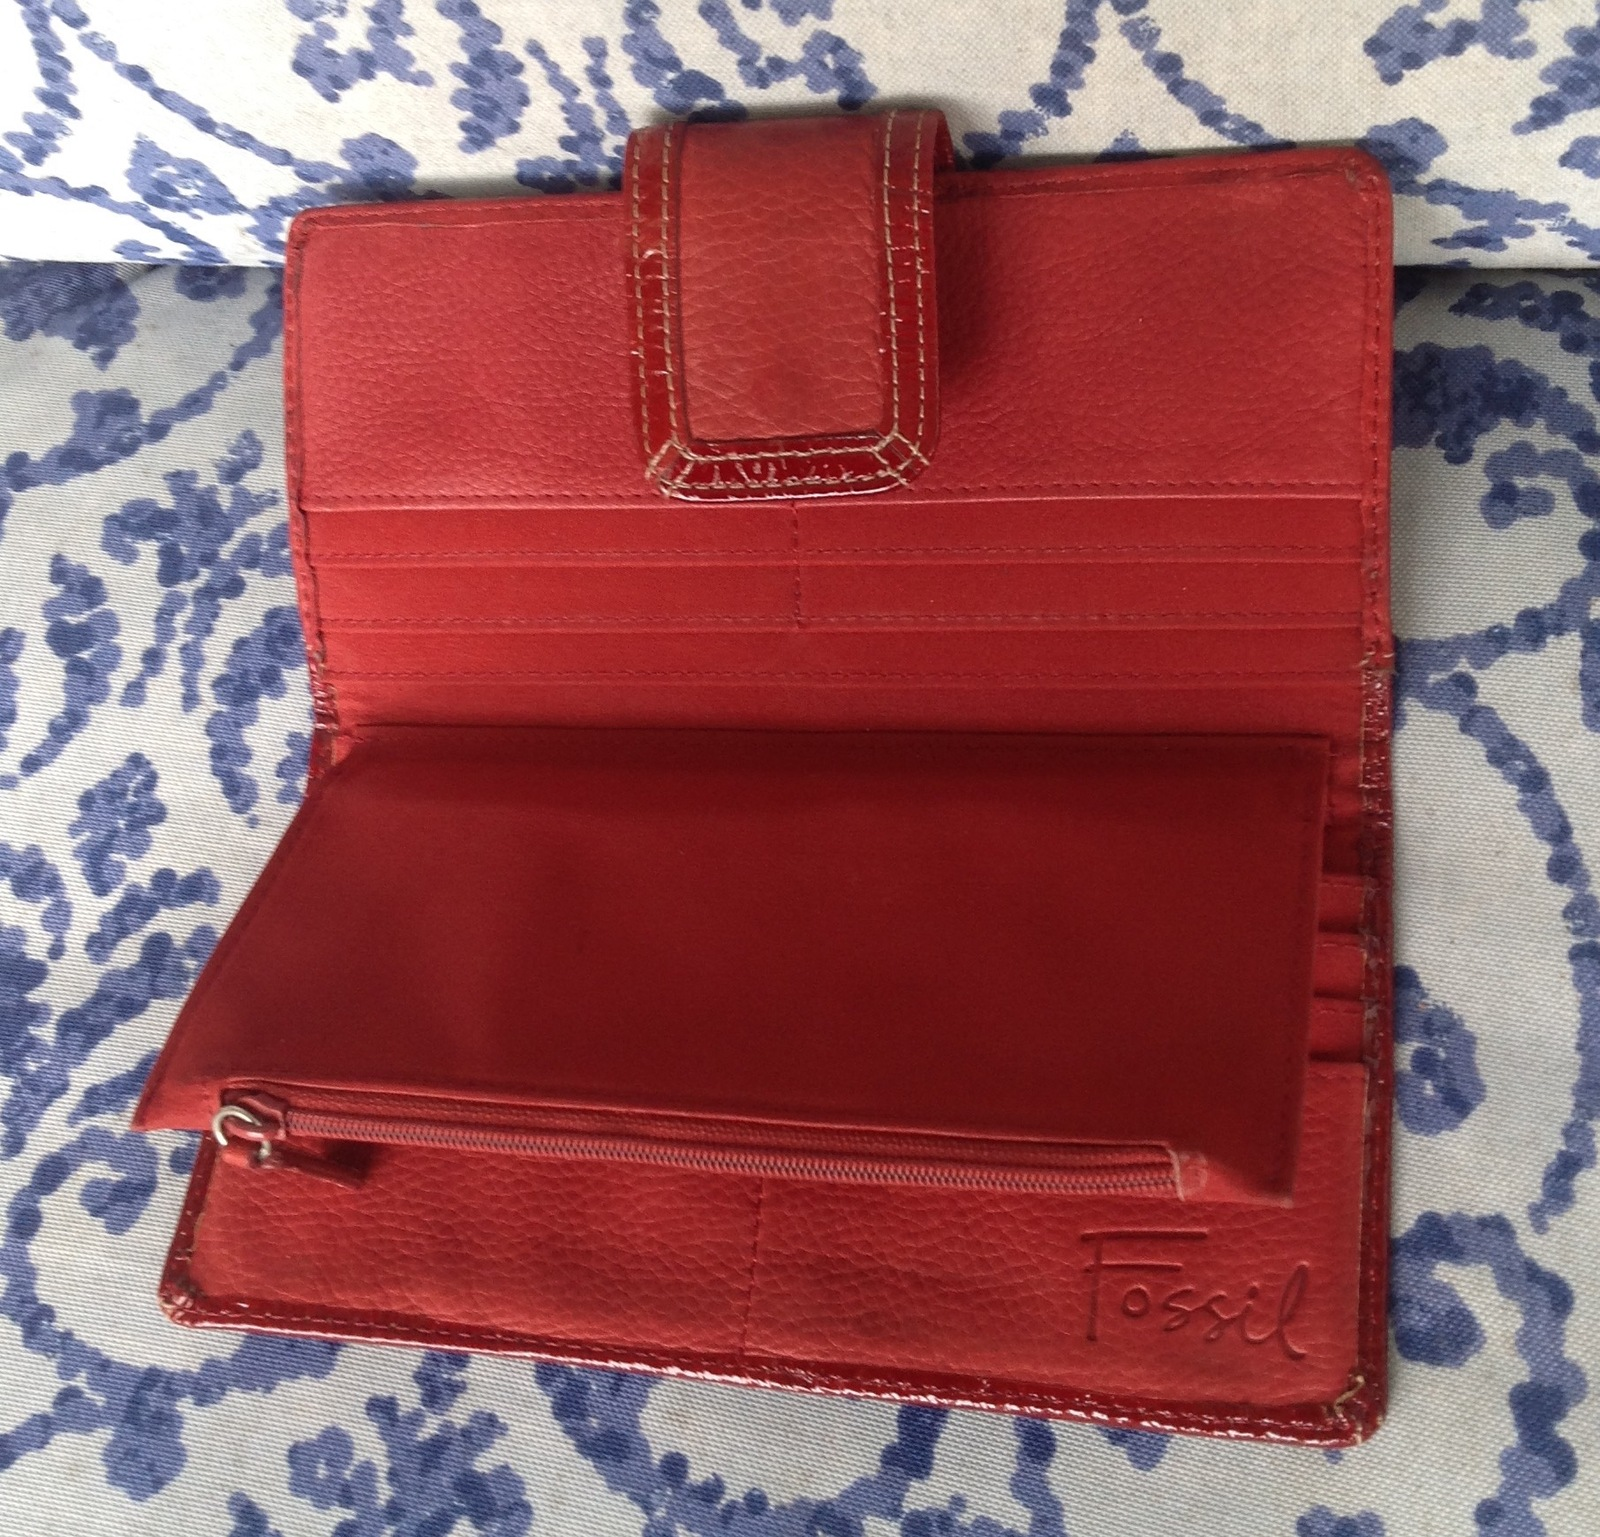 Fossil red pink gold leather clutch wallet